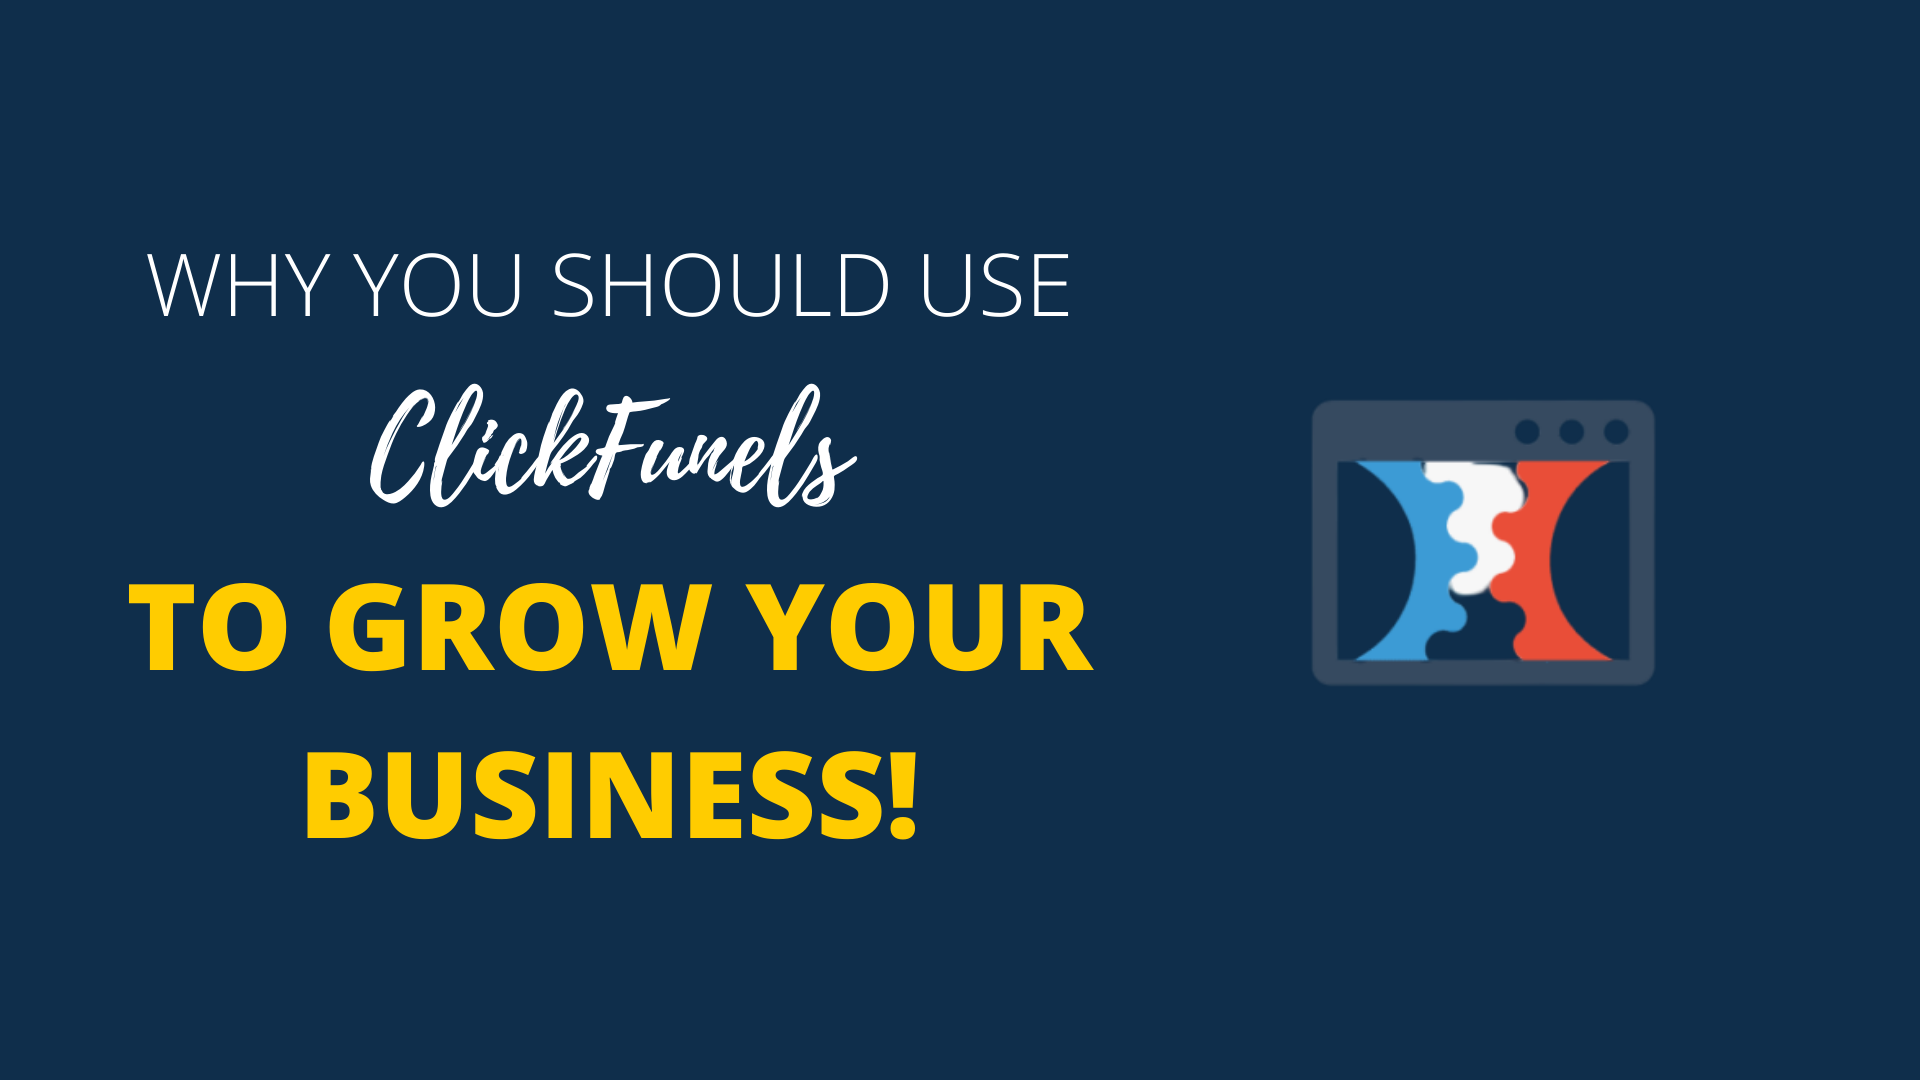 Use ClickFunnels